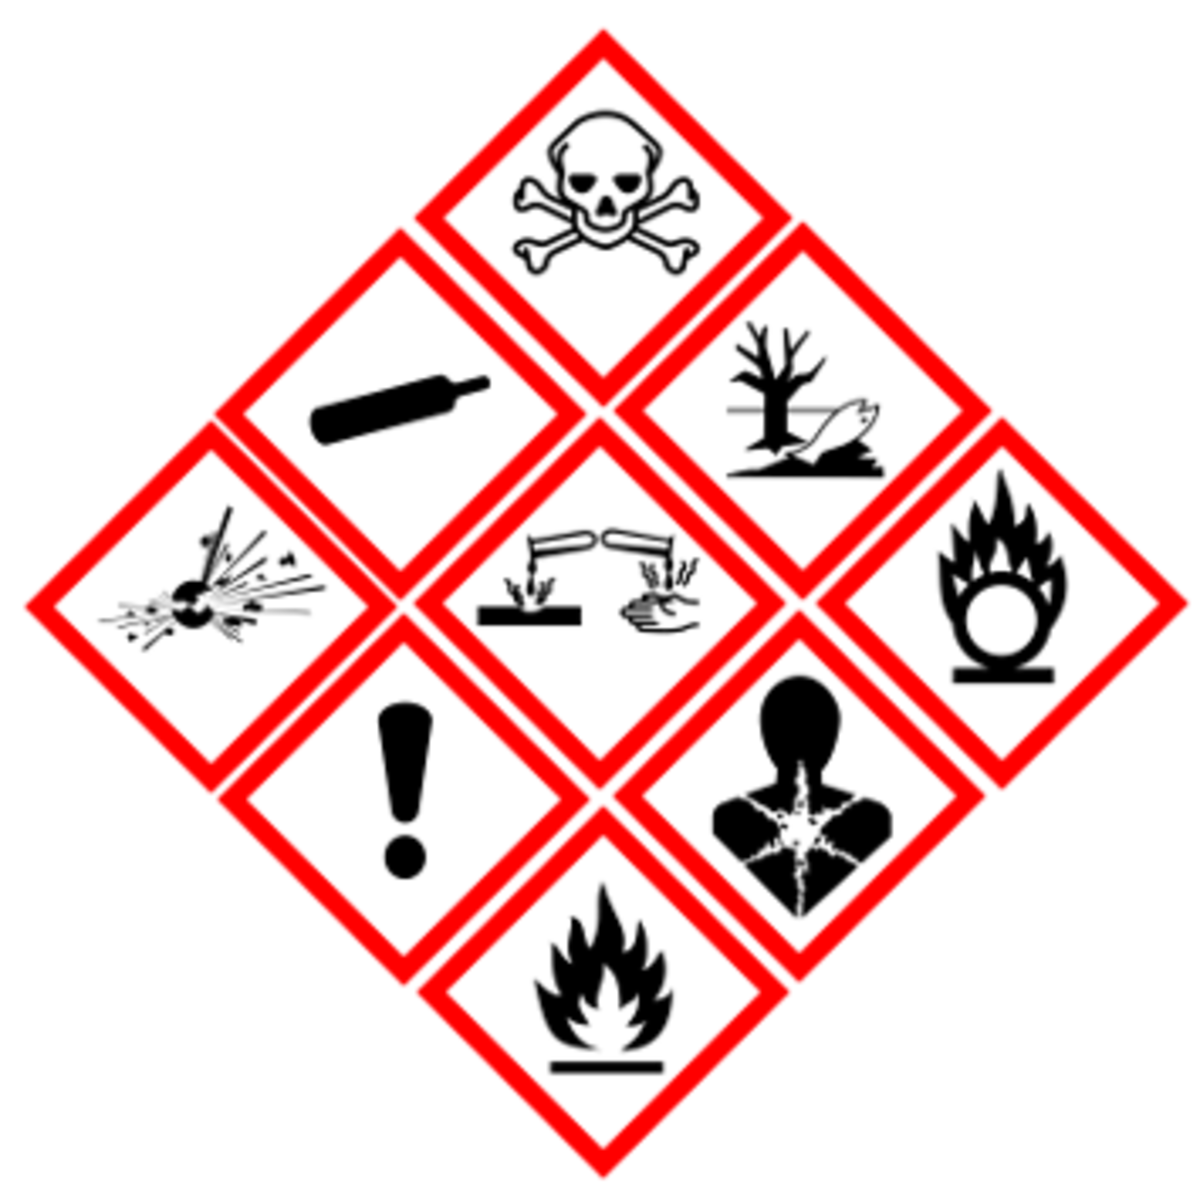 OSHA GHS Pictograms for Labels of Hazardous Materials | HubPages